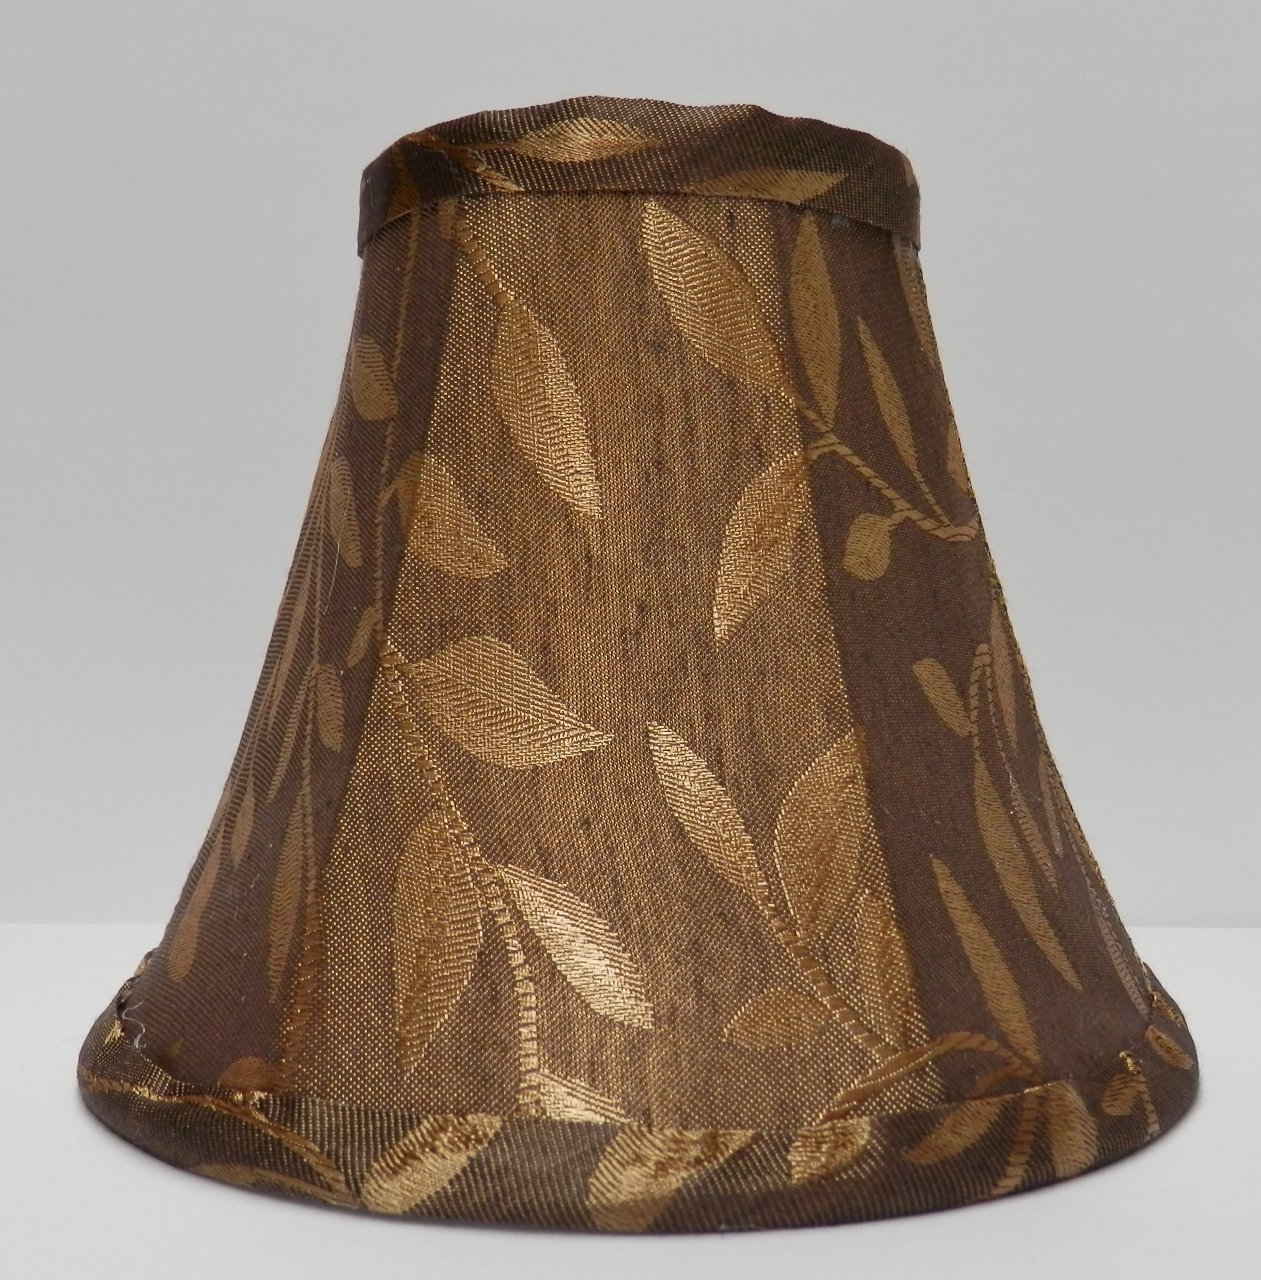 Bronze-Brown w/Gold Leaves Fabric Chandelier Lamp Shade